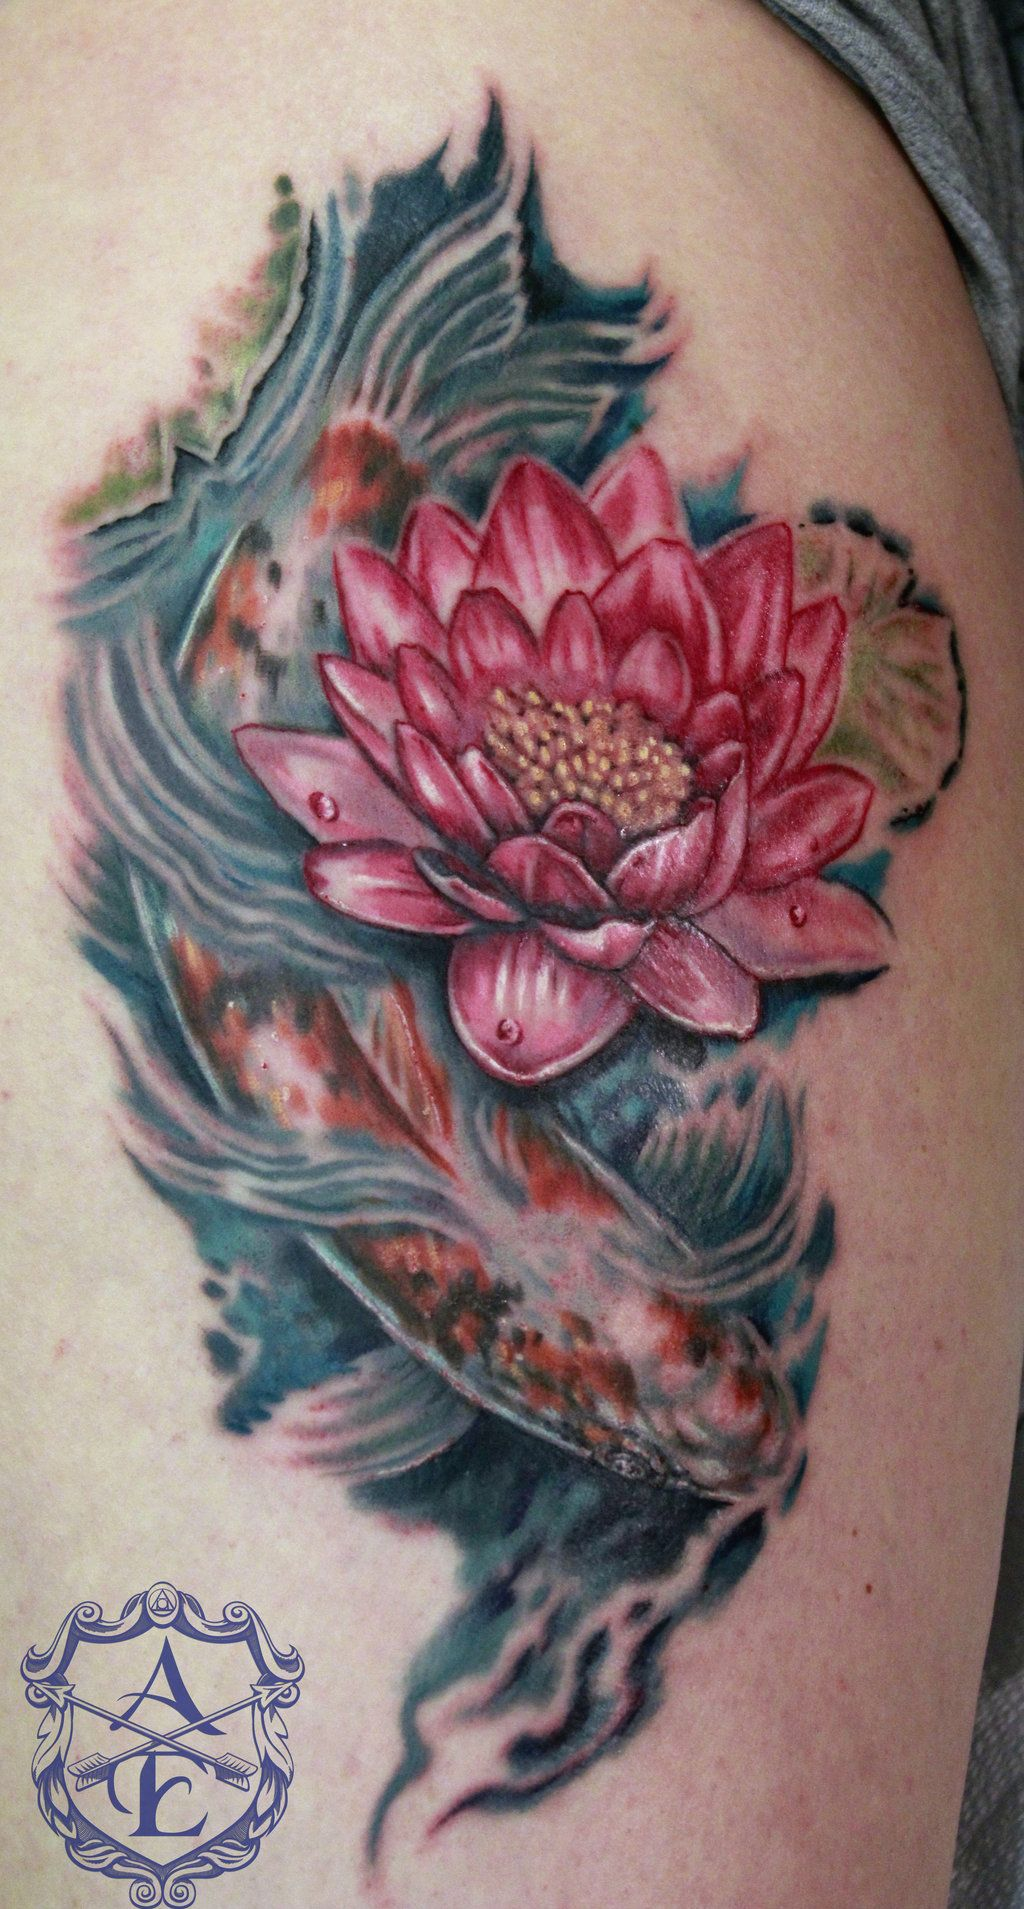 Lotus Flower With Koi Fish Tattoo By Seanspoison On Deviantart Flower Tattoo Meanings Koi Fish Tattoo Meaning Koi Fish Tattoo